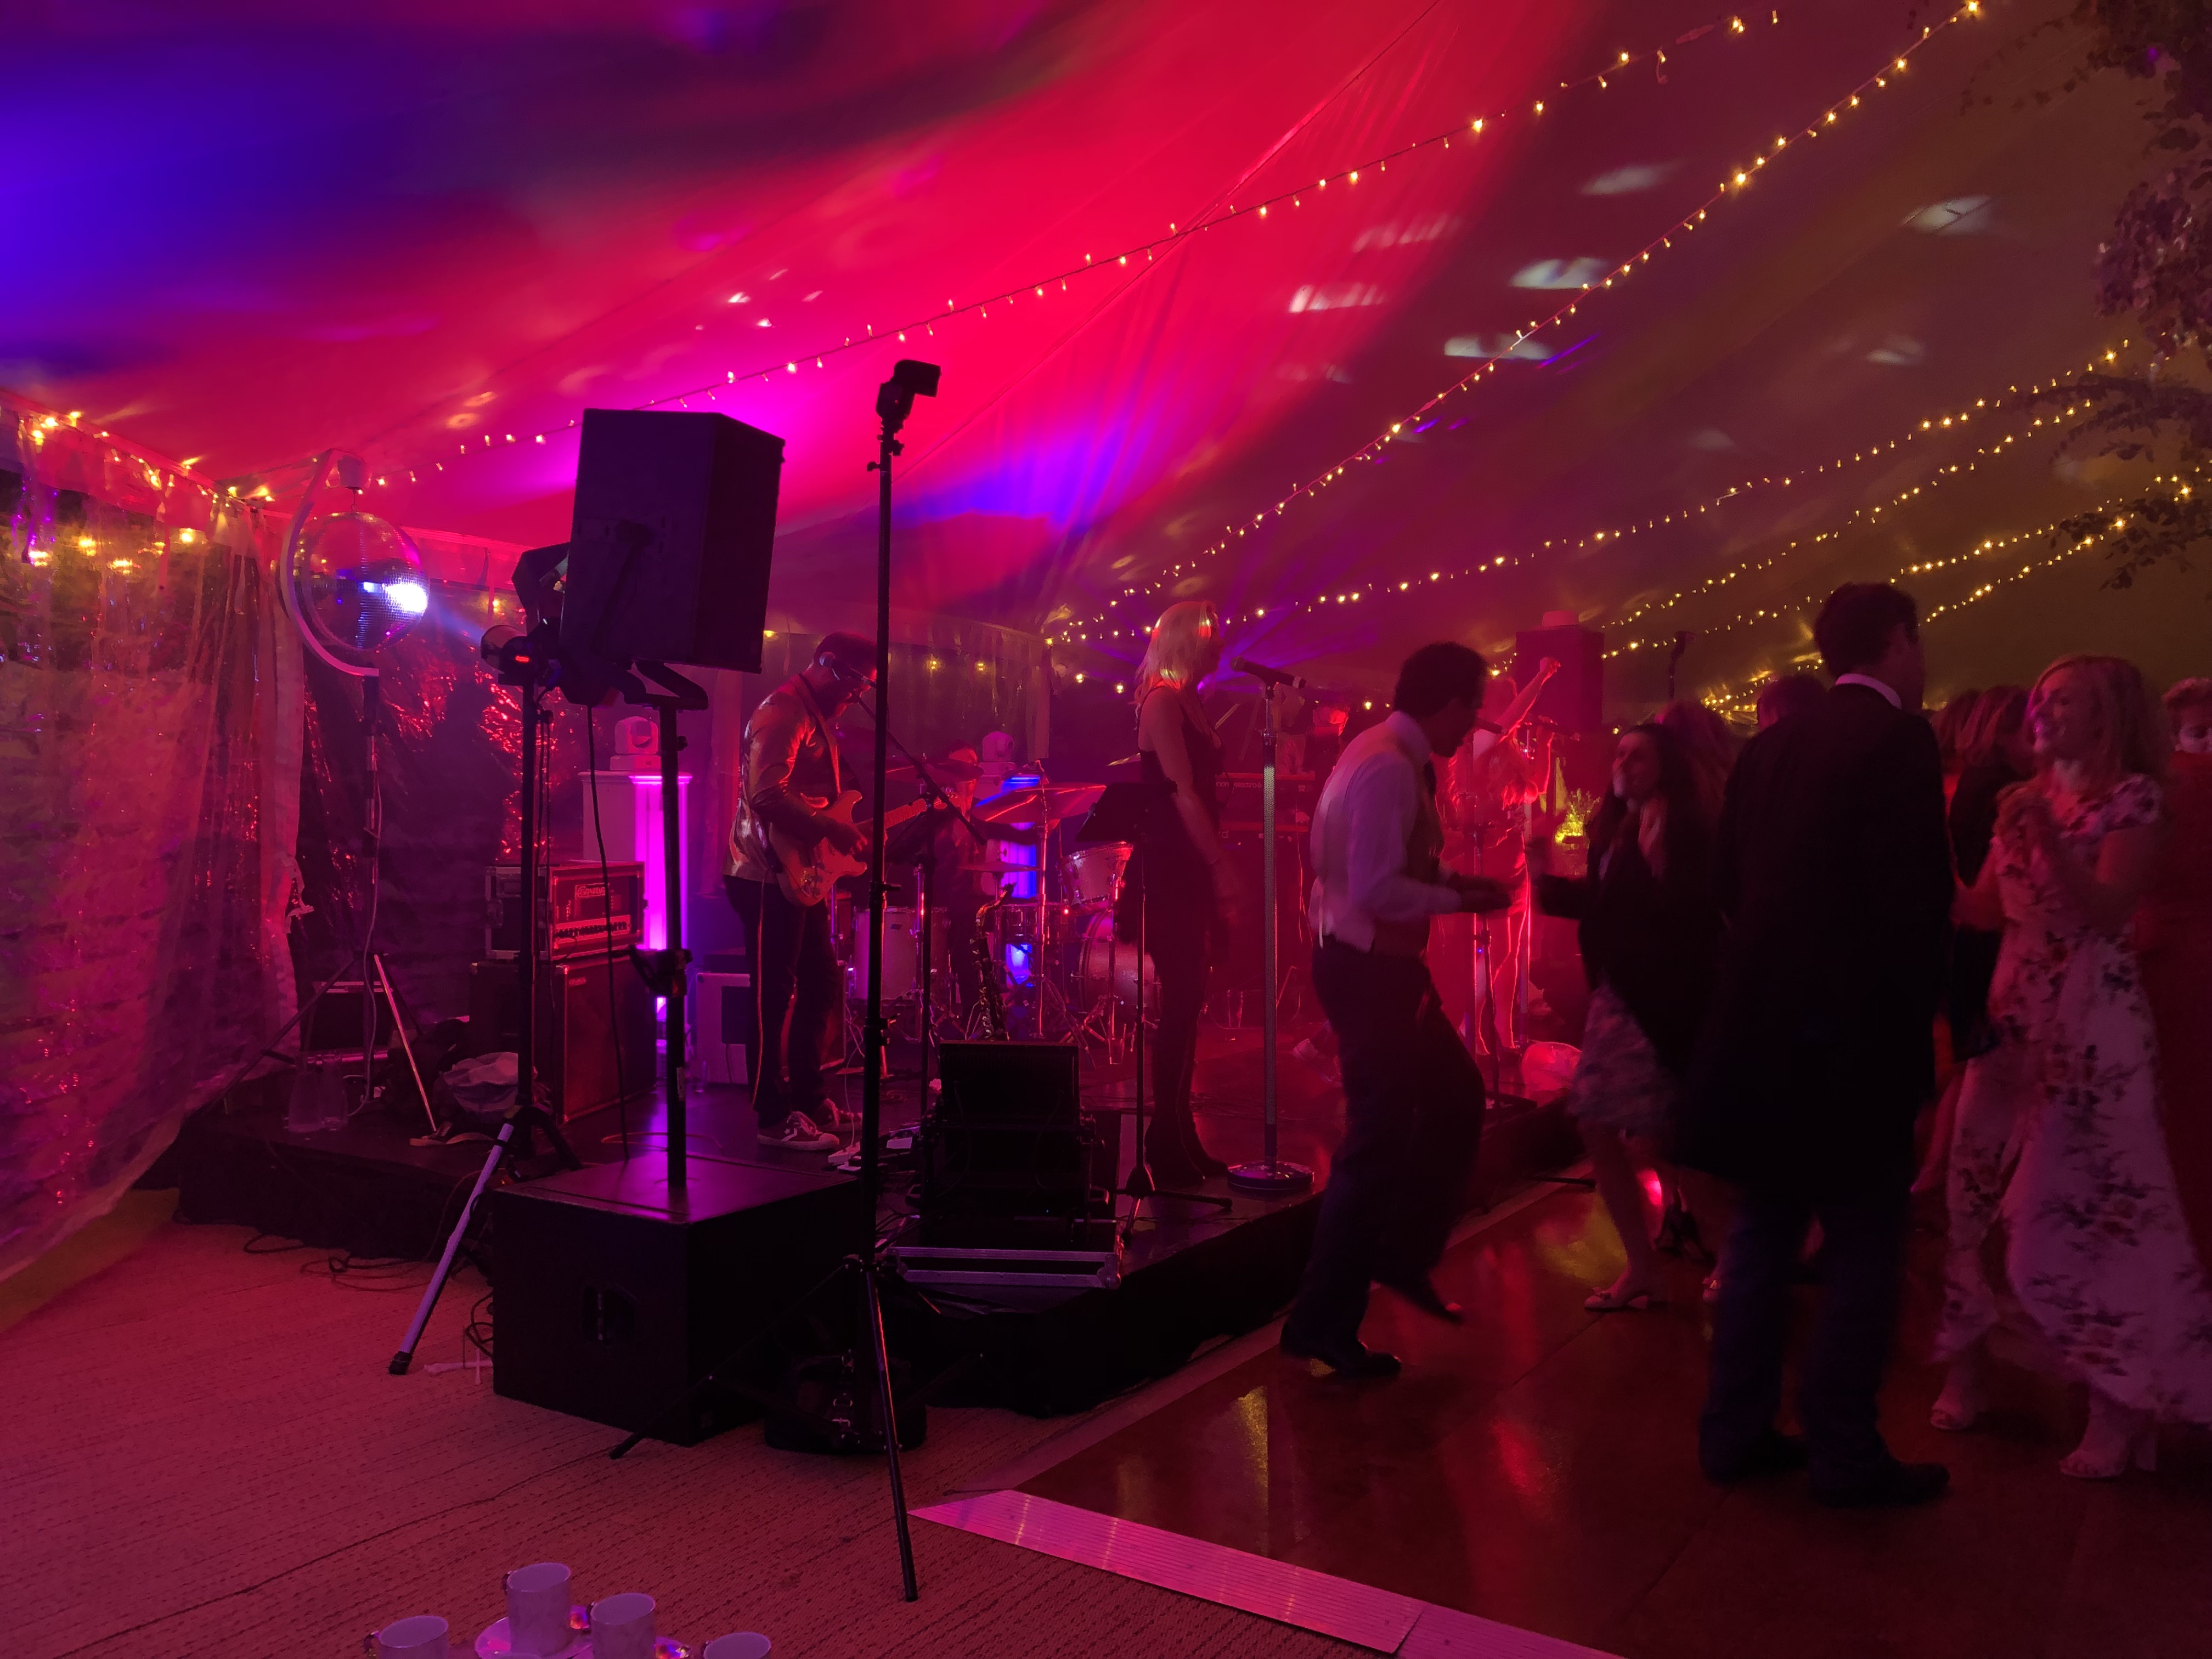 Superb after dinner marquee lighting